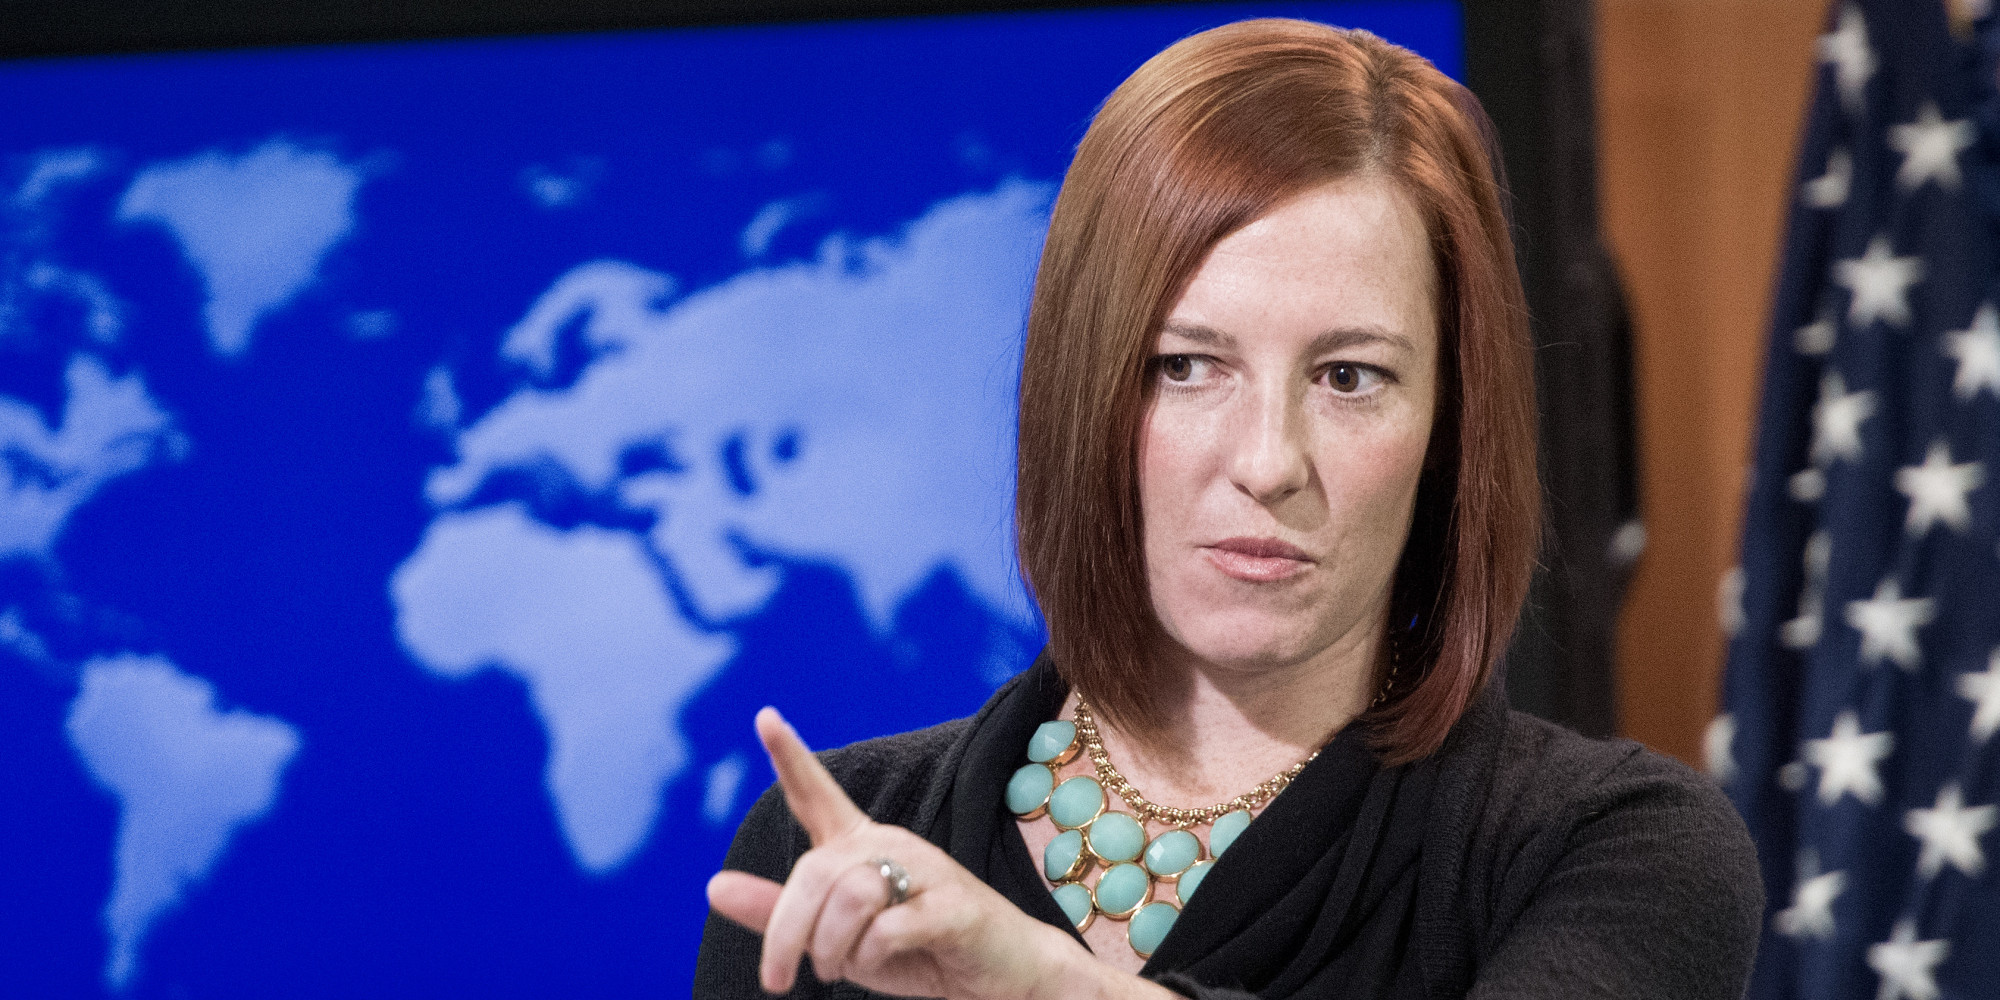 US-POLITICS-DIPLOMACY-PSAKI